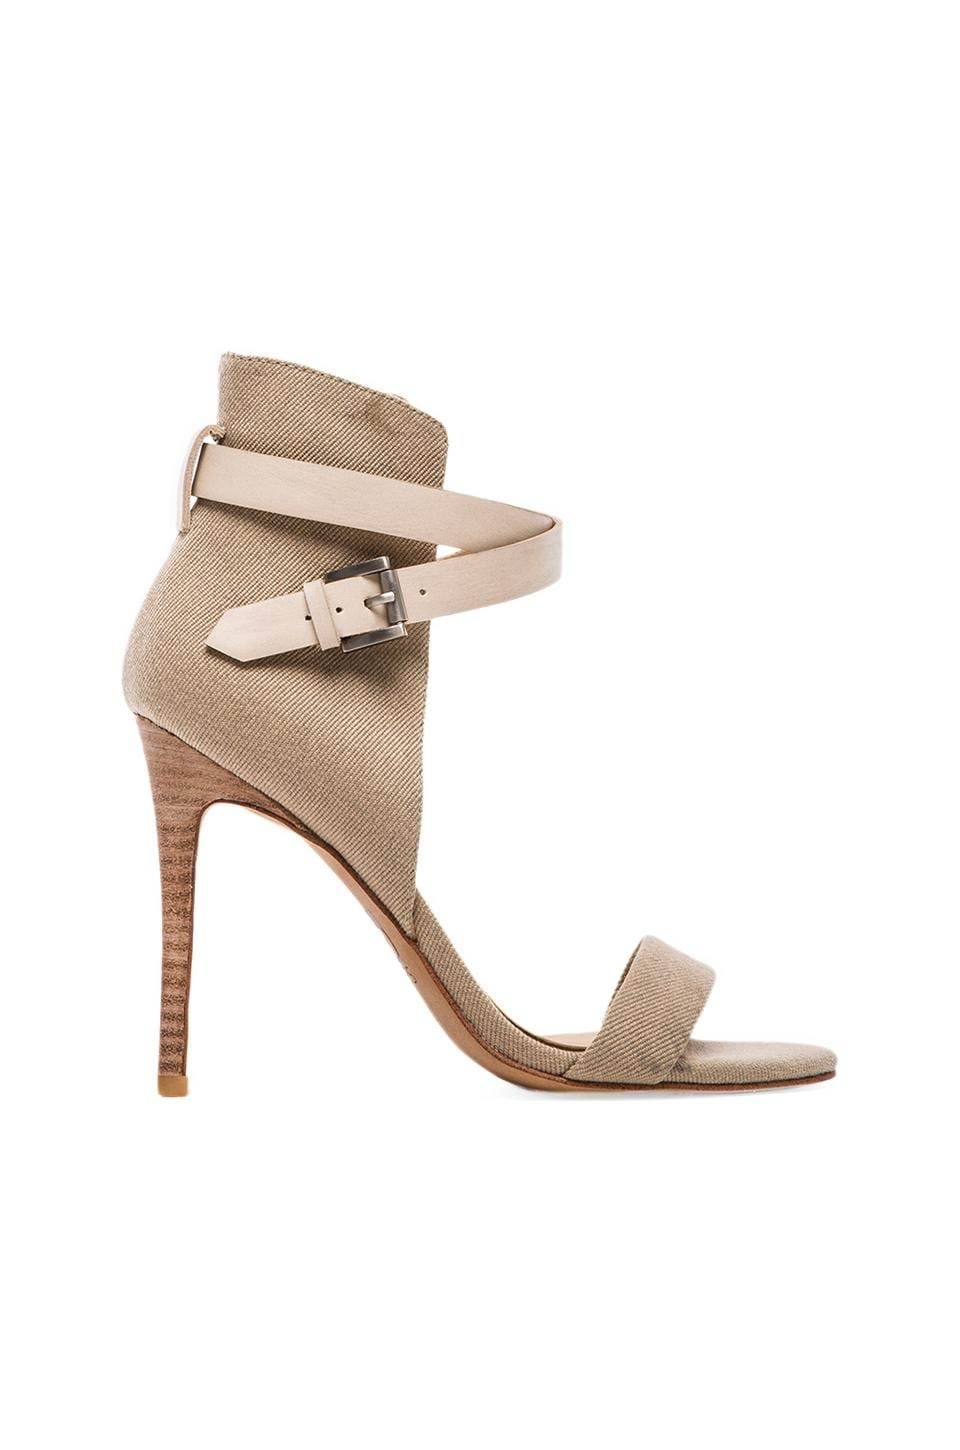 Joe's Jeans Macee Heel in Taupe